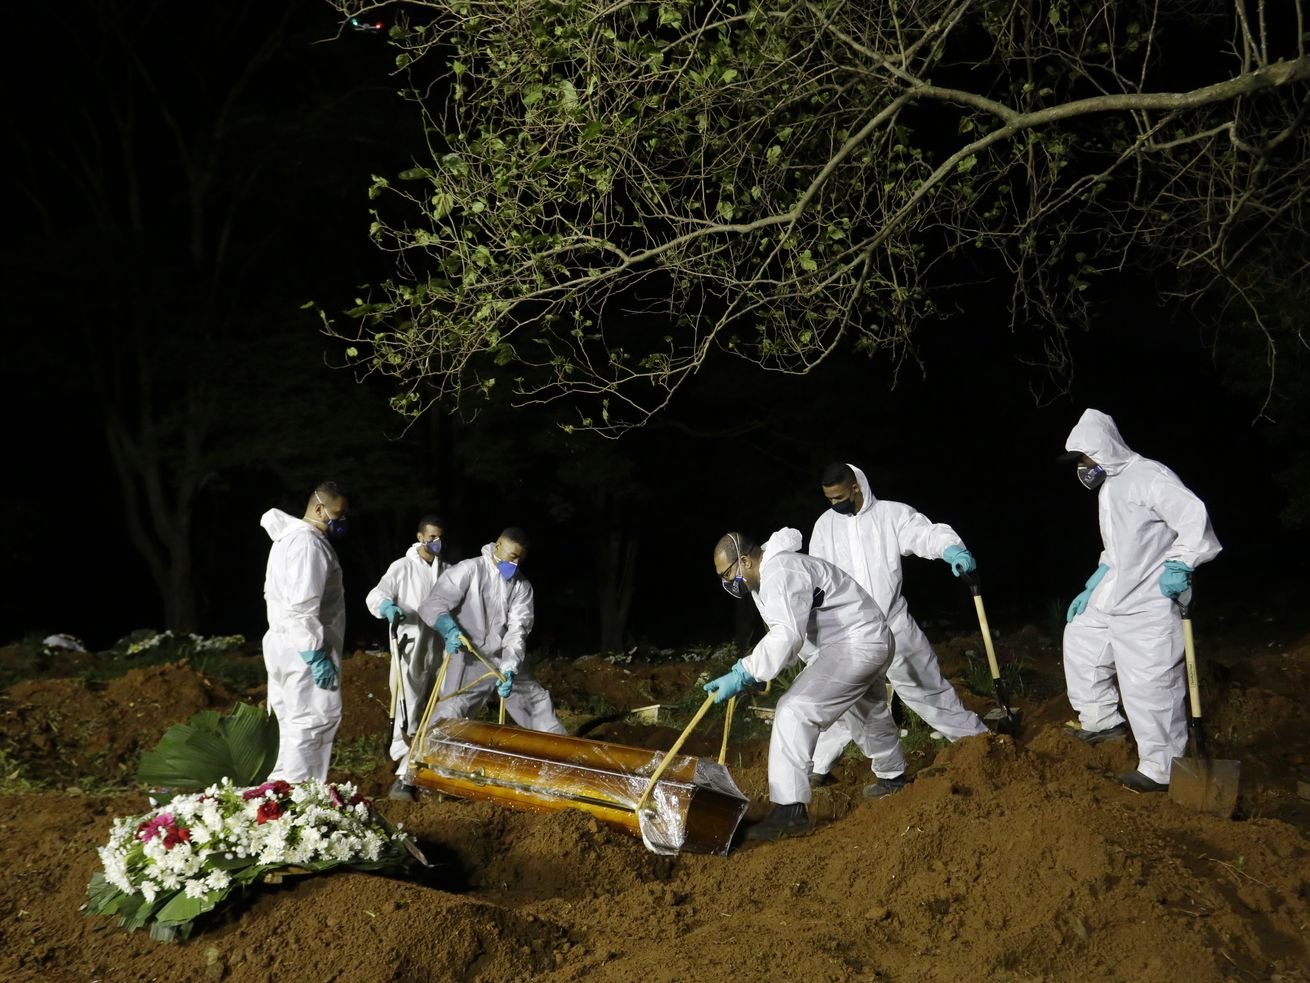 In this March 31, 2021 file photo, cemetery workers work hours past sundown, as they lower the coffin that contain the remains of a COVID-19 victim into a freshly dug grave at the Vila Formosa cemetery in Sao Paulo, Brazil.